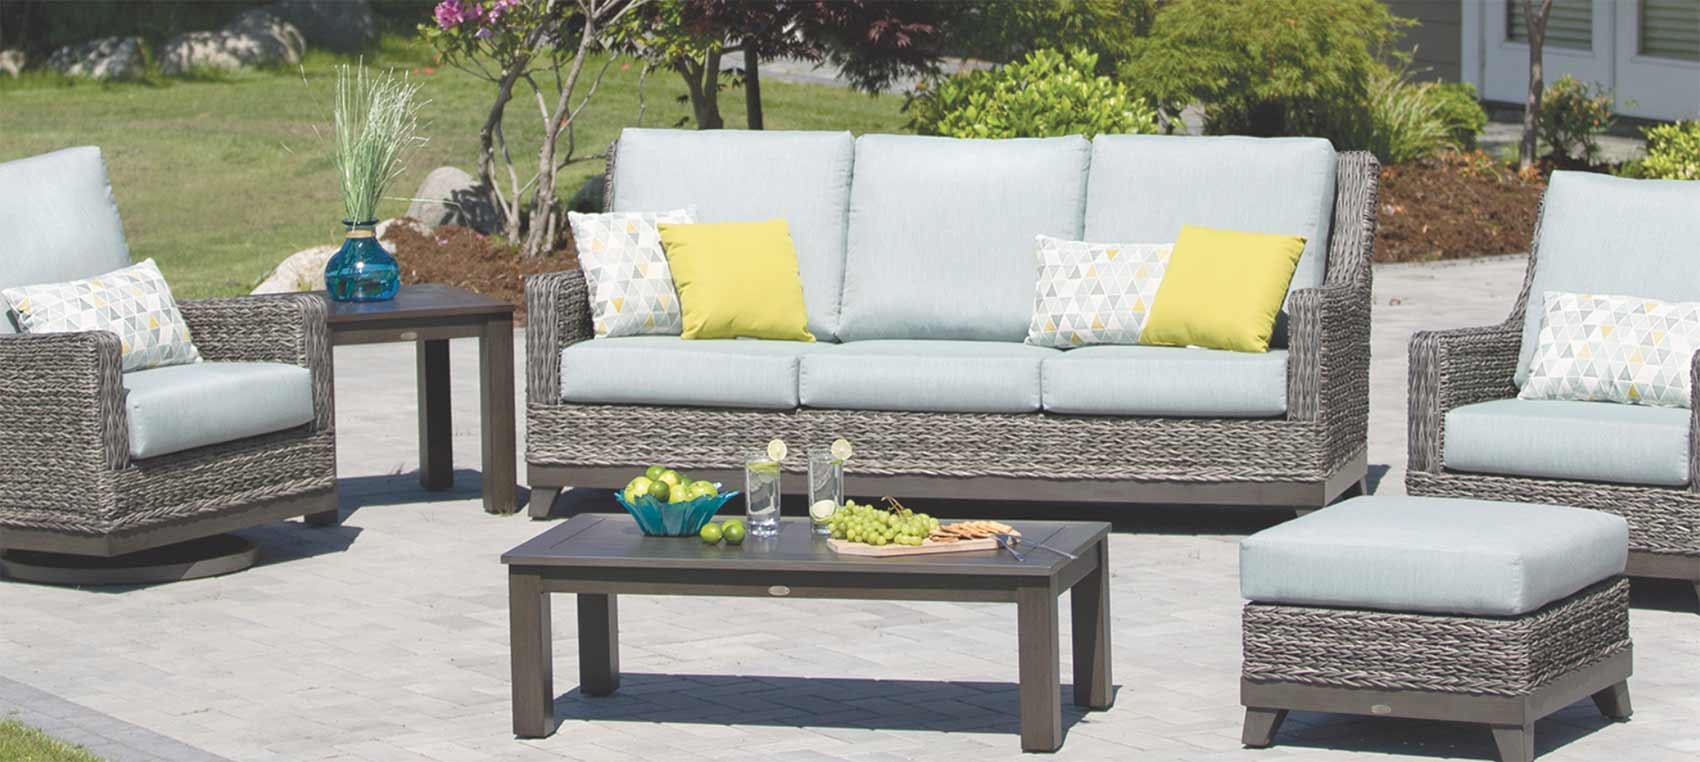 Sofa Liquidation Montreal Outdoor Patio Furniture Specialist In Montreal Jml Inc